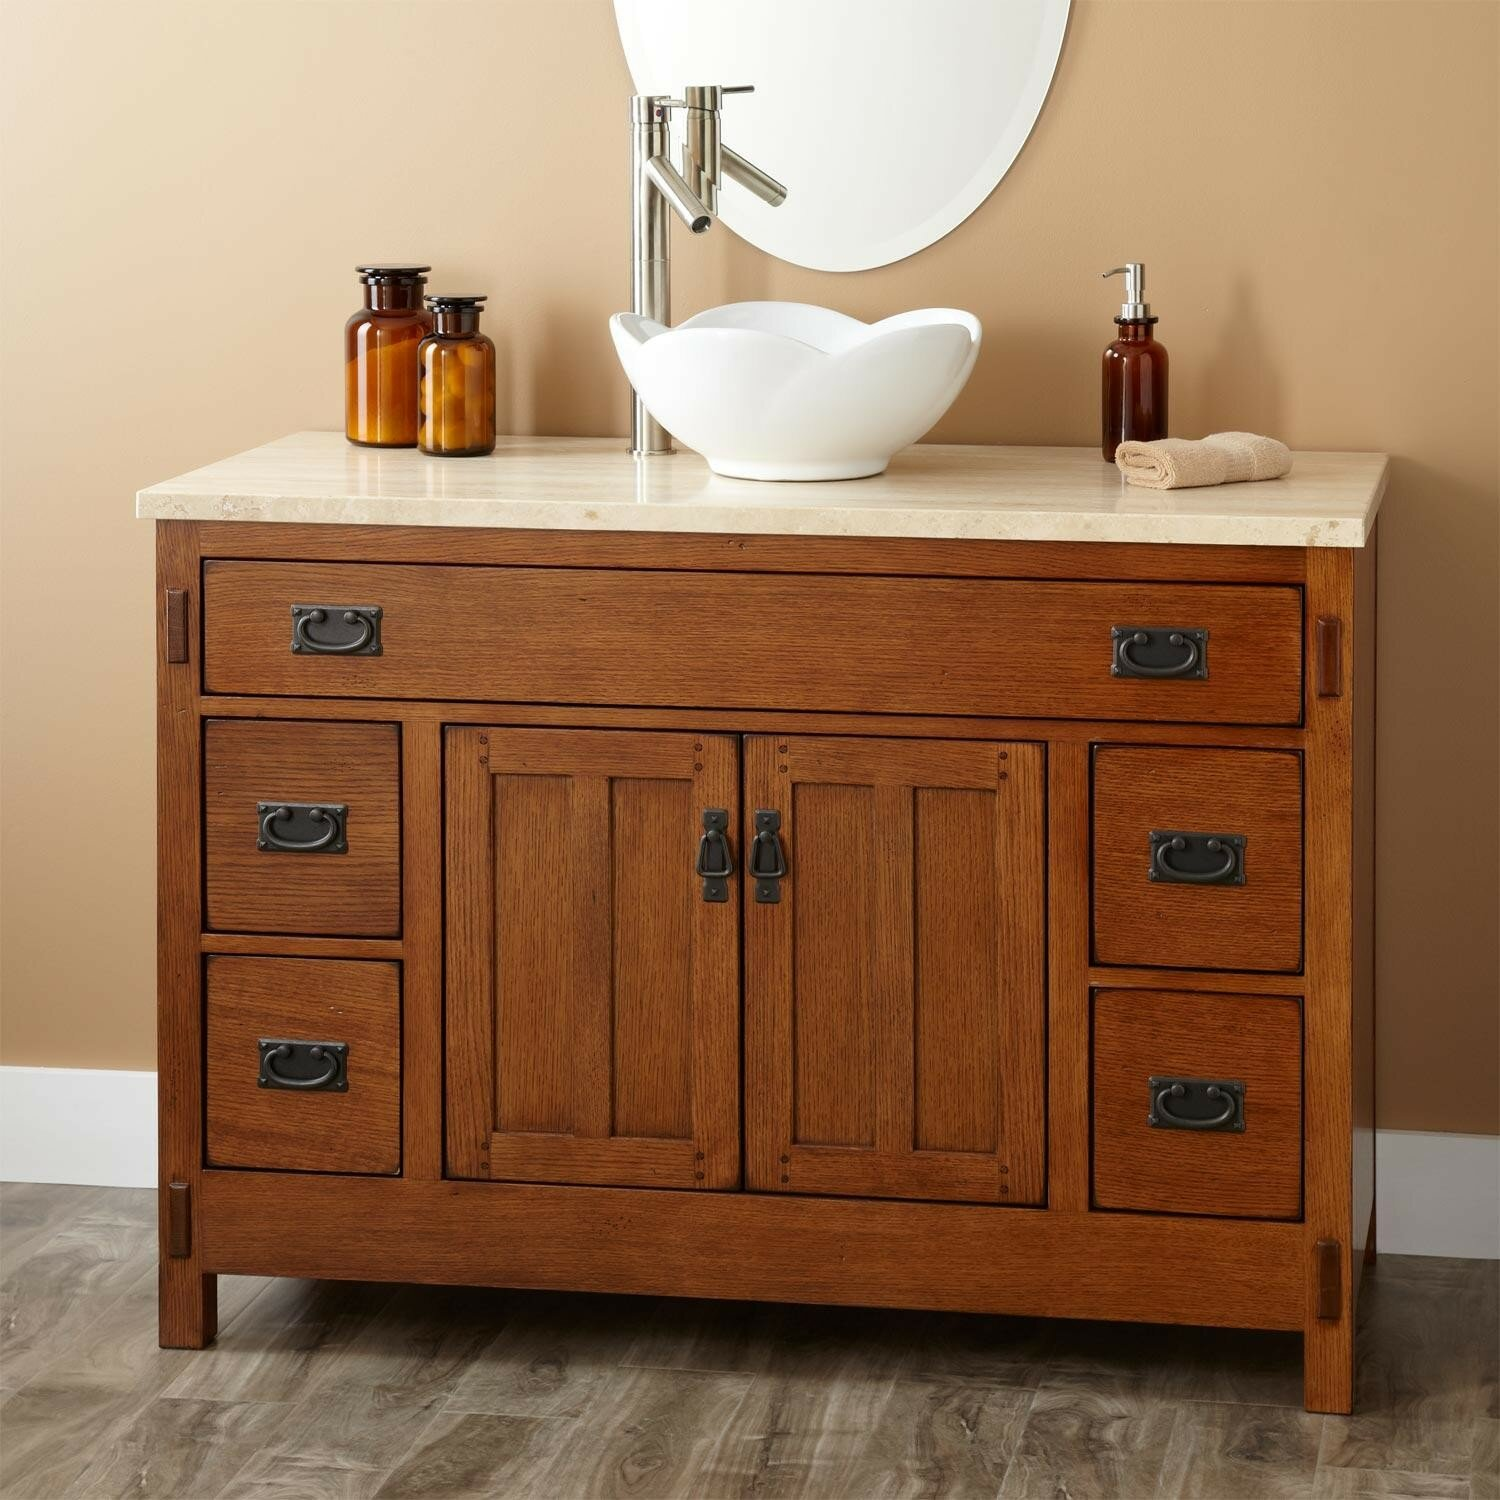 Bathroom pottery barn vanity for bathroom cabinet design for Bathroom vanity accessories